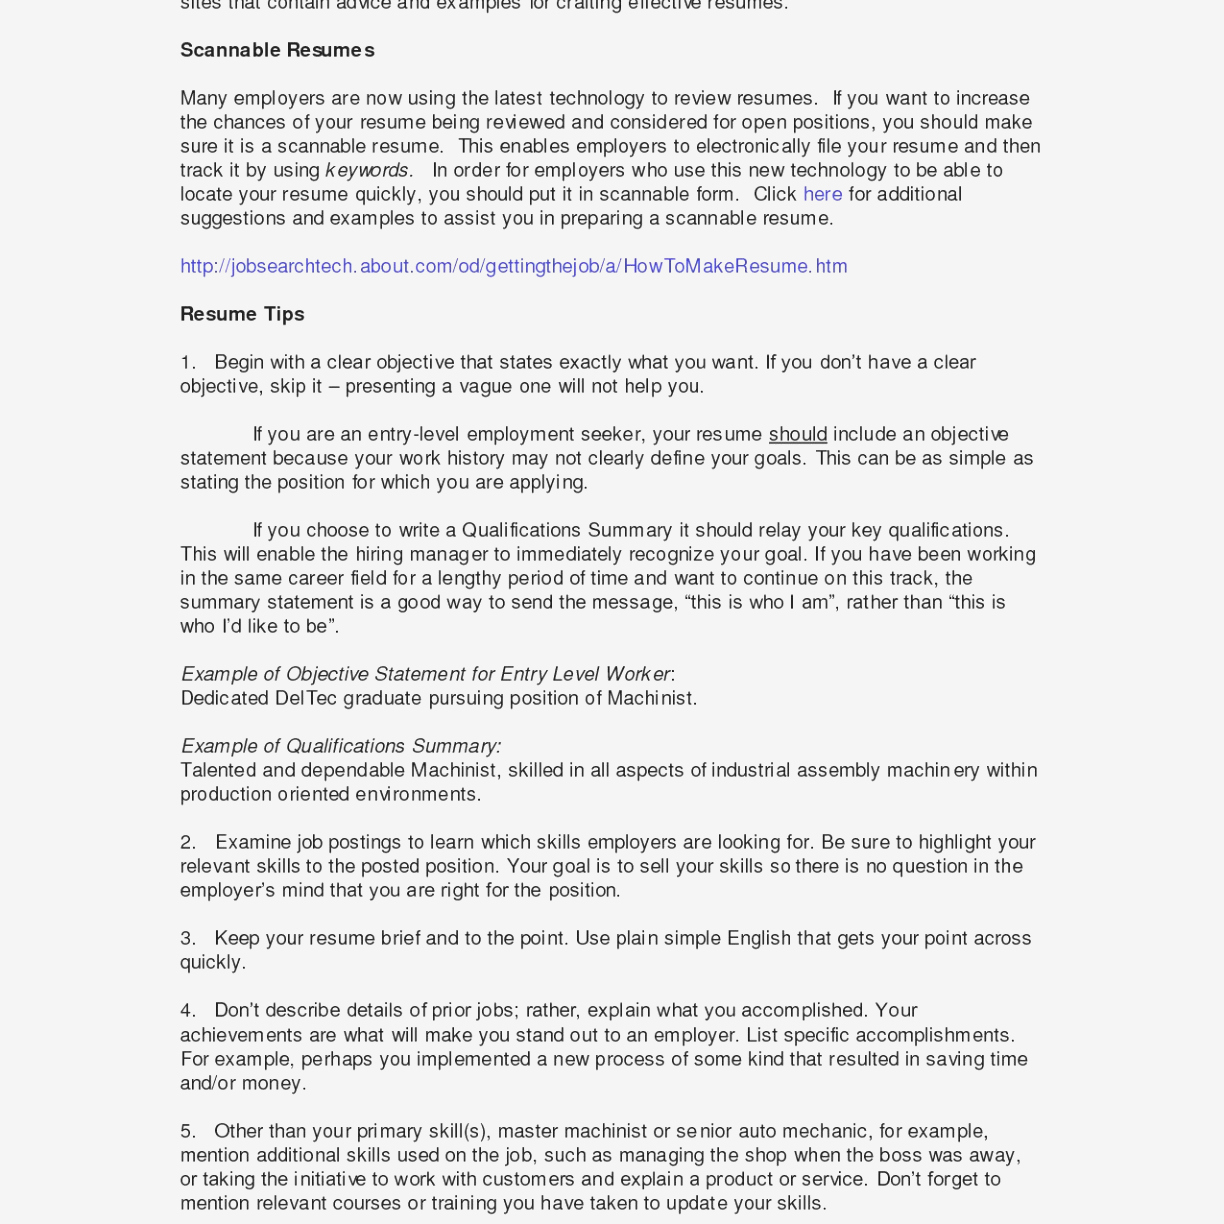 Accounting Resume Summary Examples - Sample Resume Summary Statements